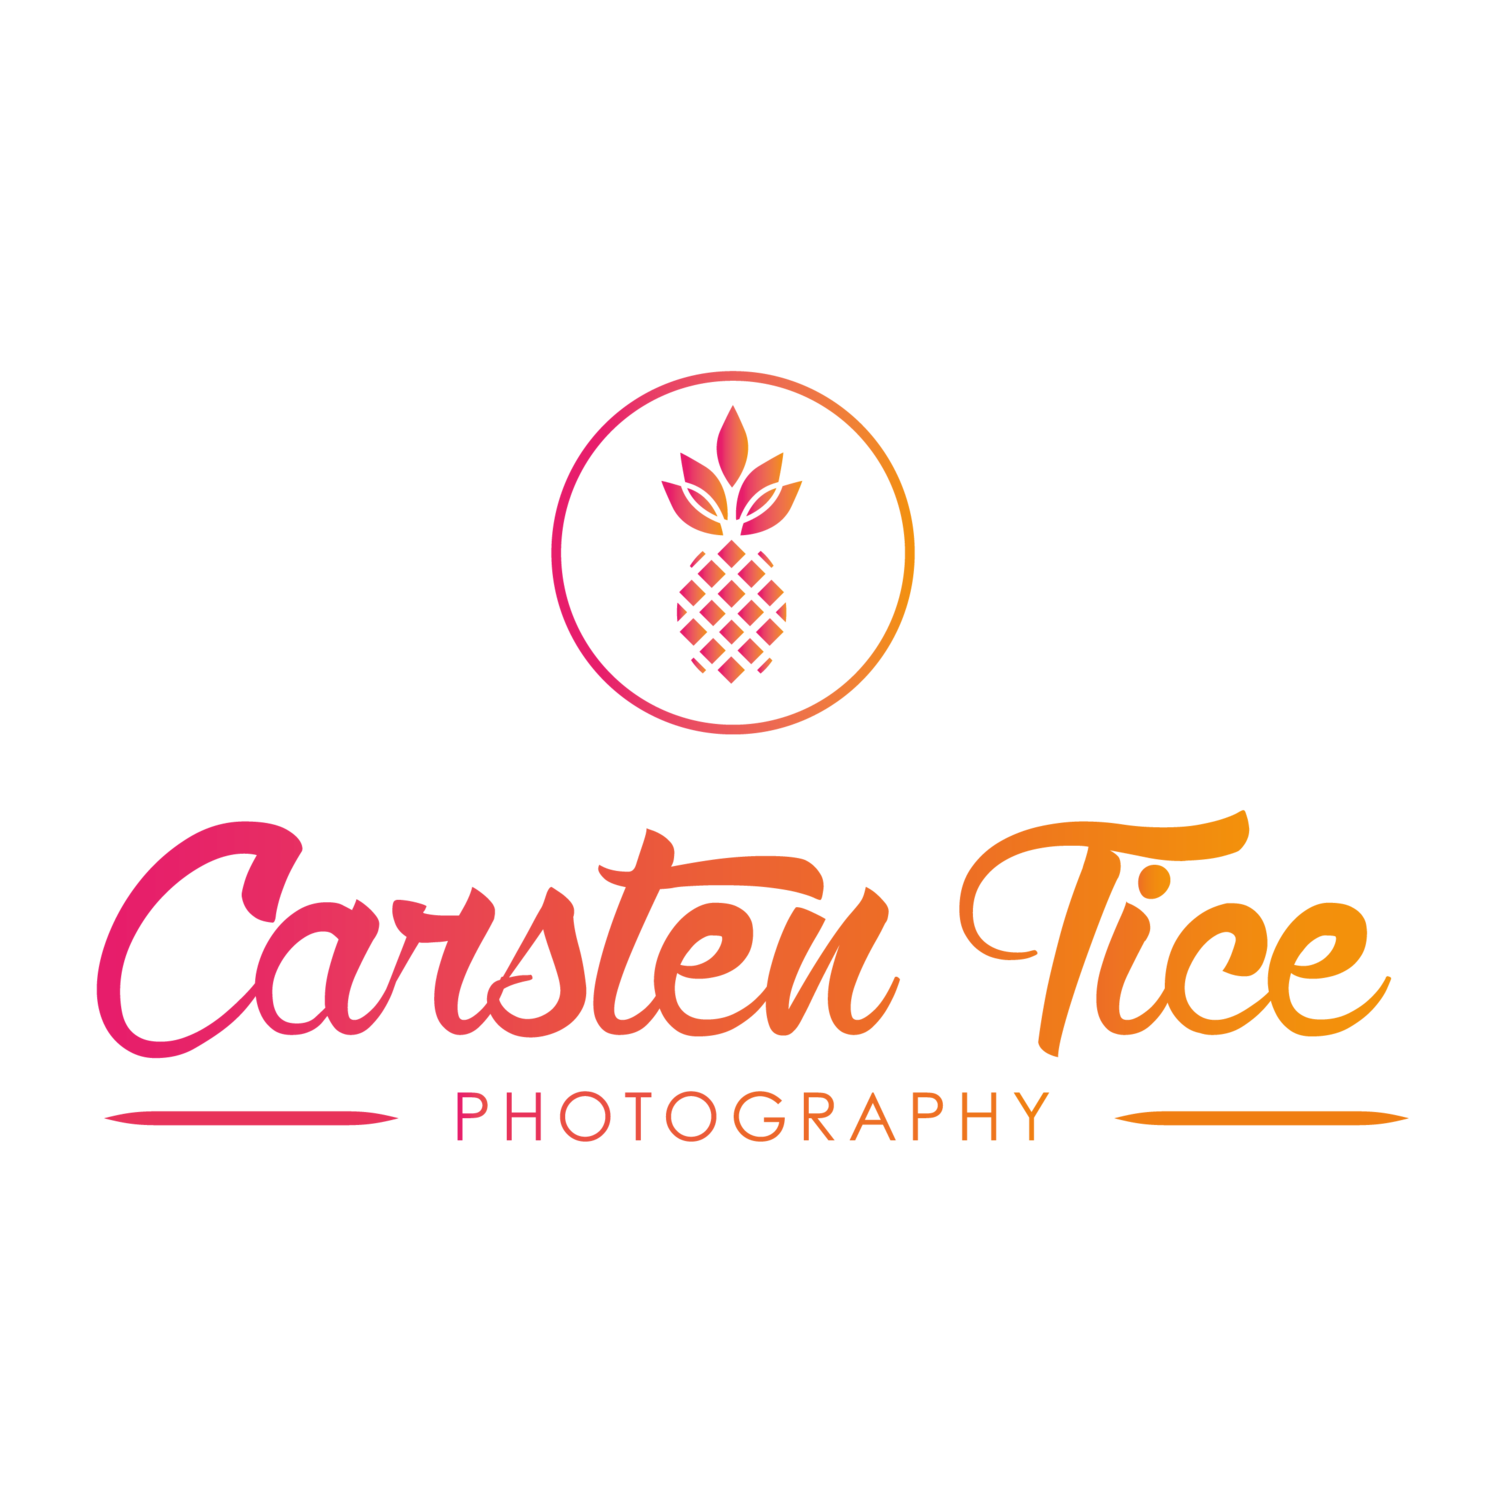 Artistic Orange County Wedding Photography by Carsten Tice